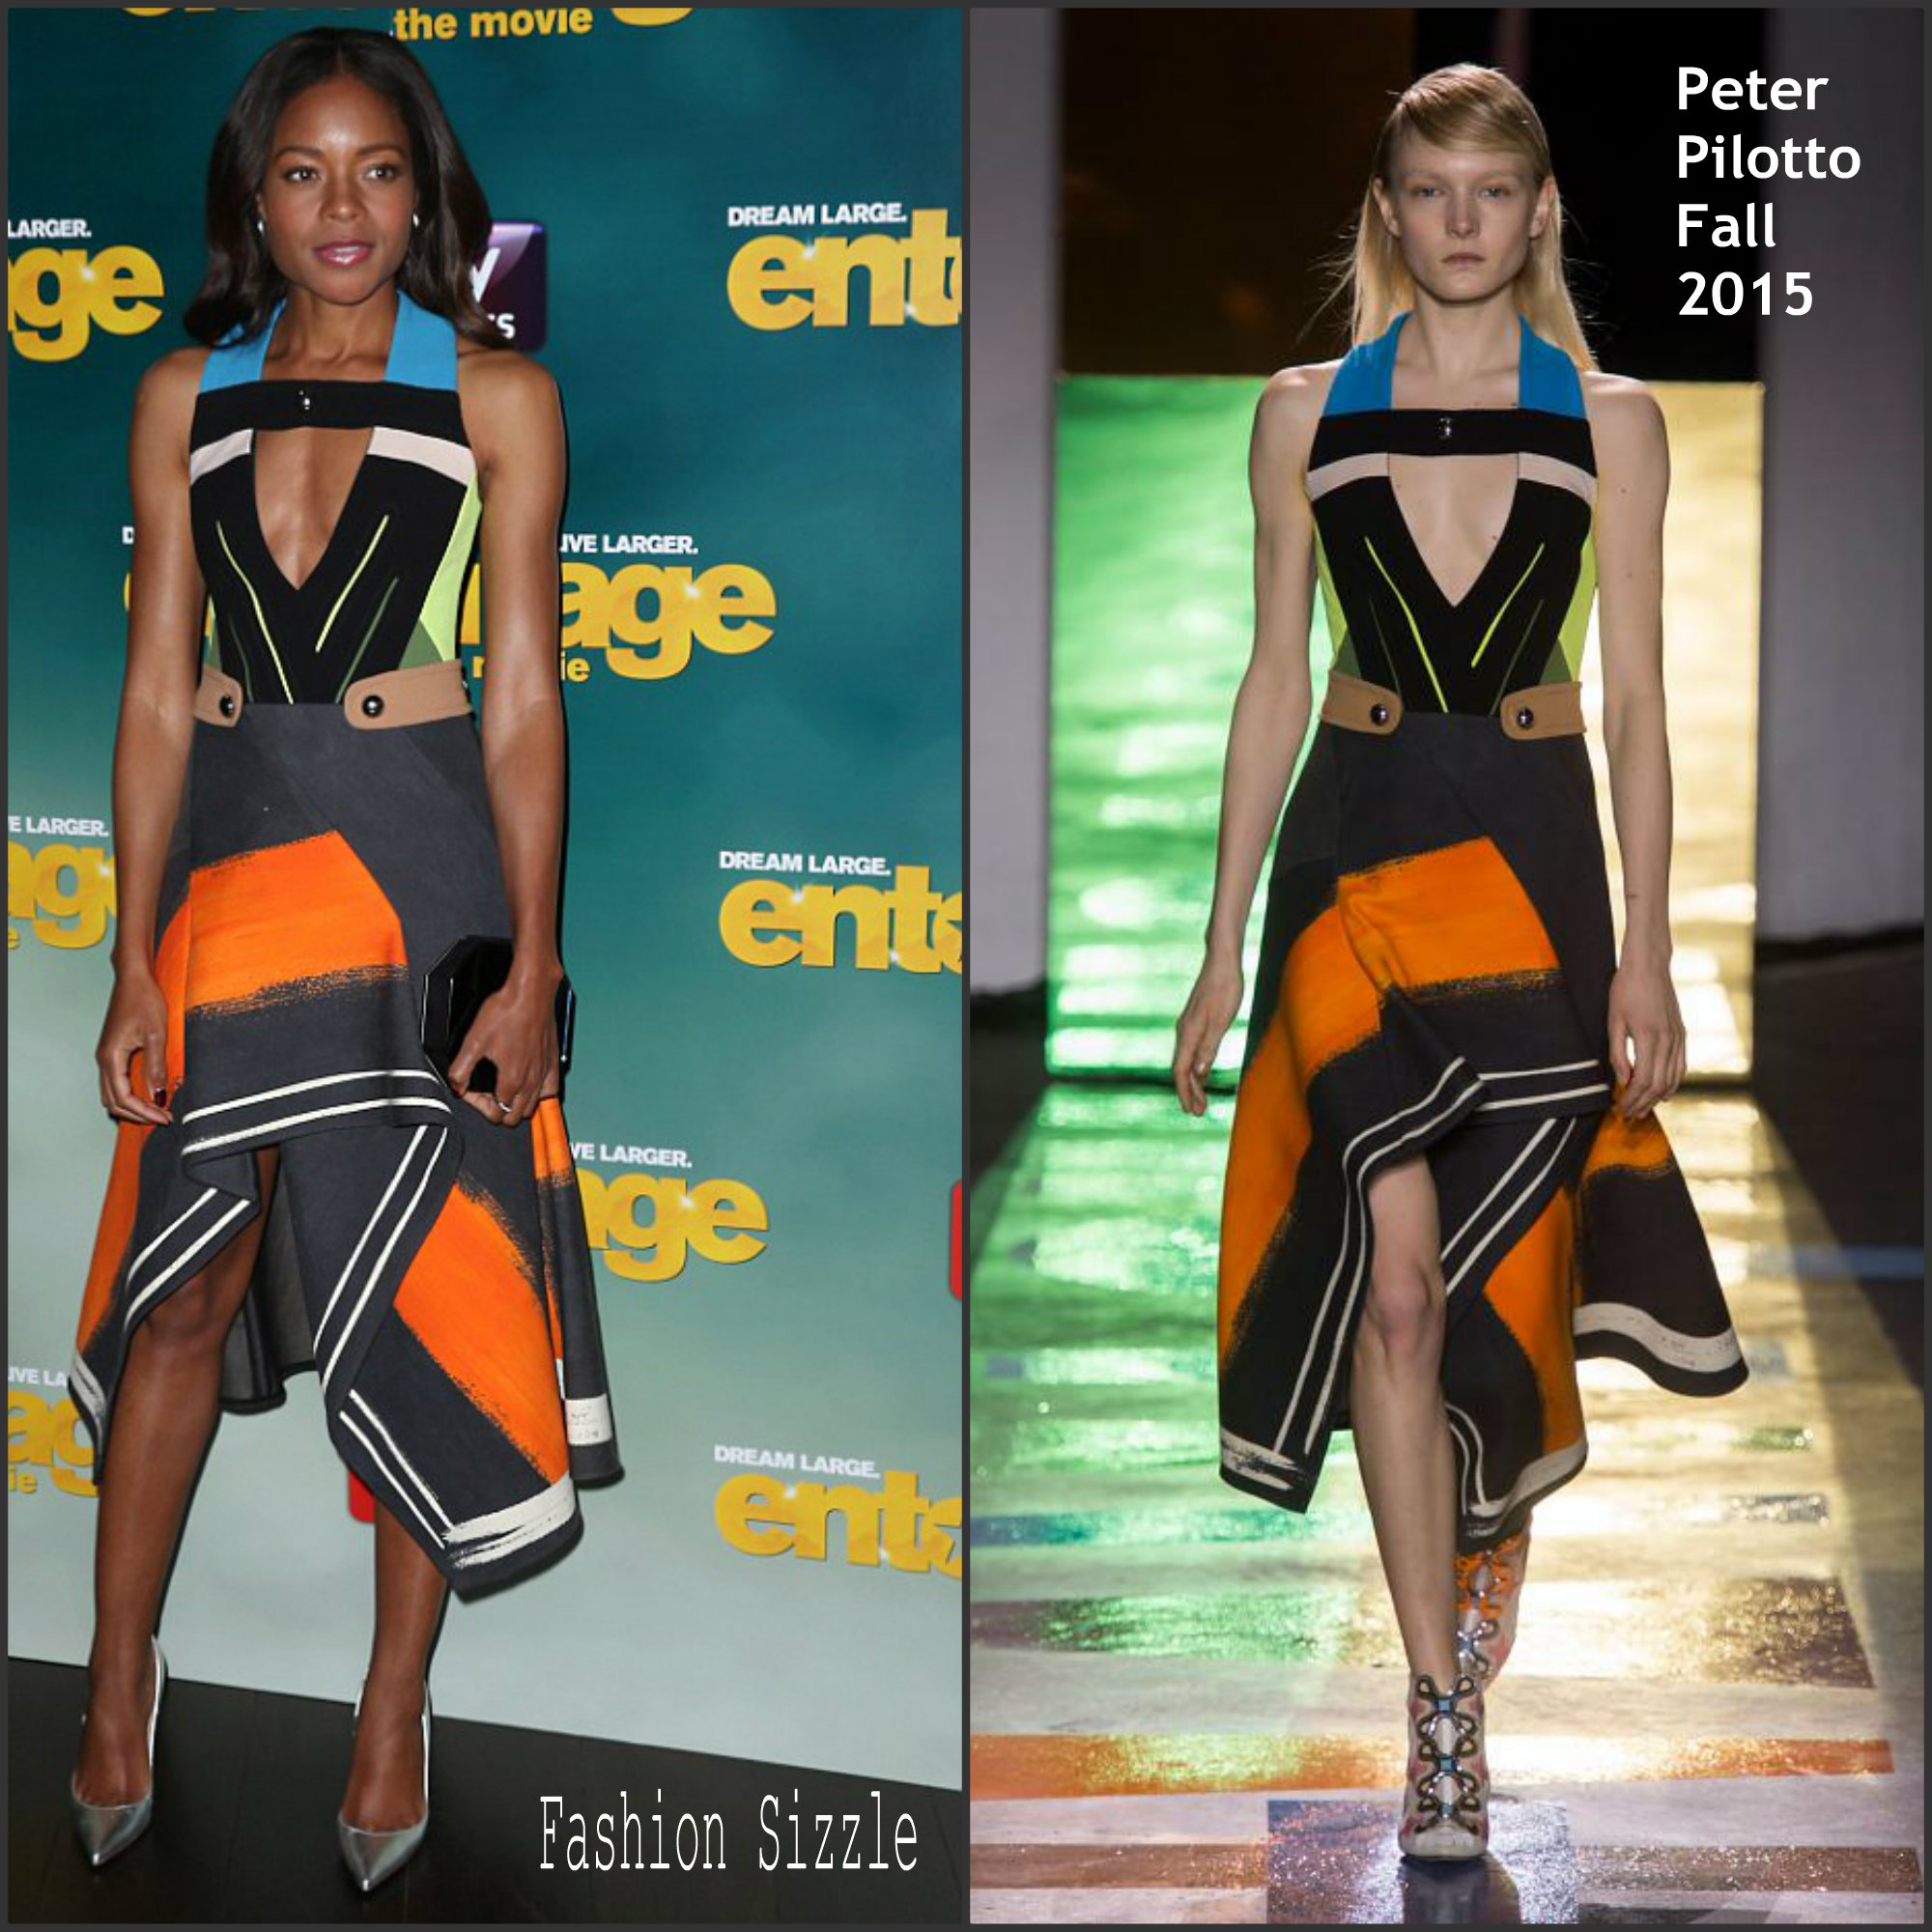 naomie-harris-in-peter-pilotto-at-entourage-london-premiere